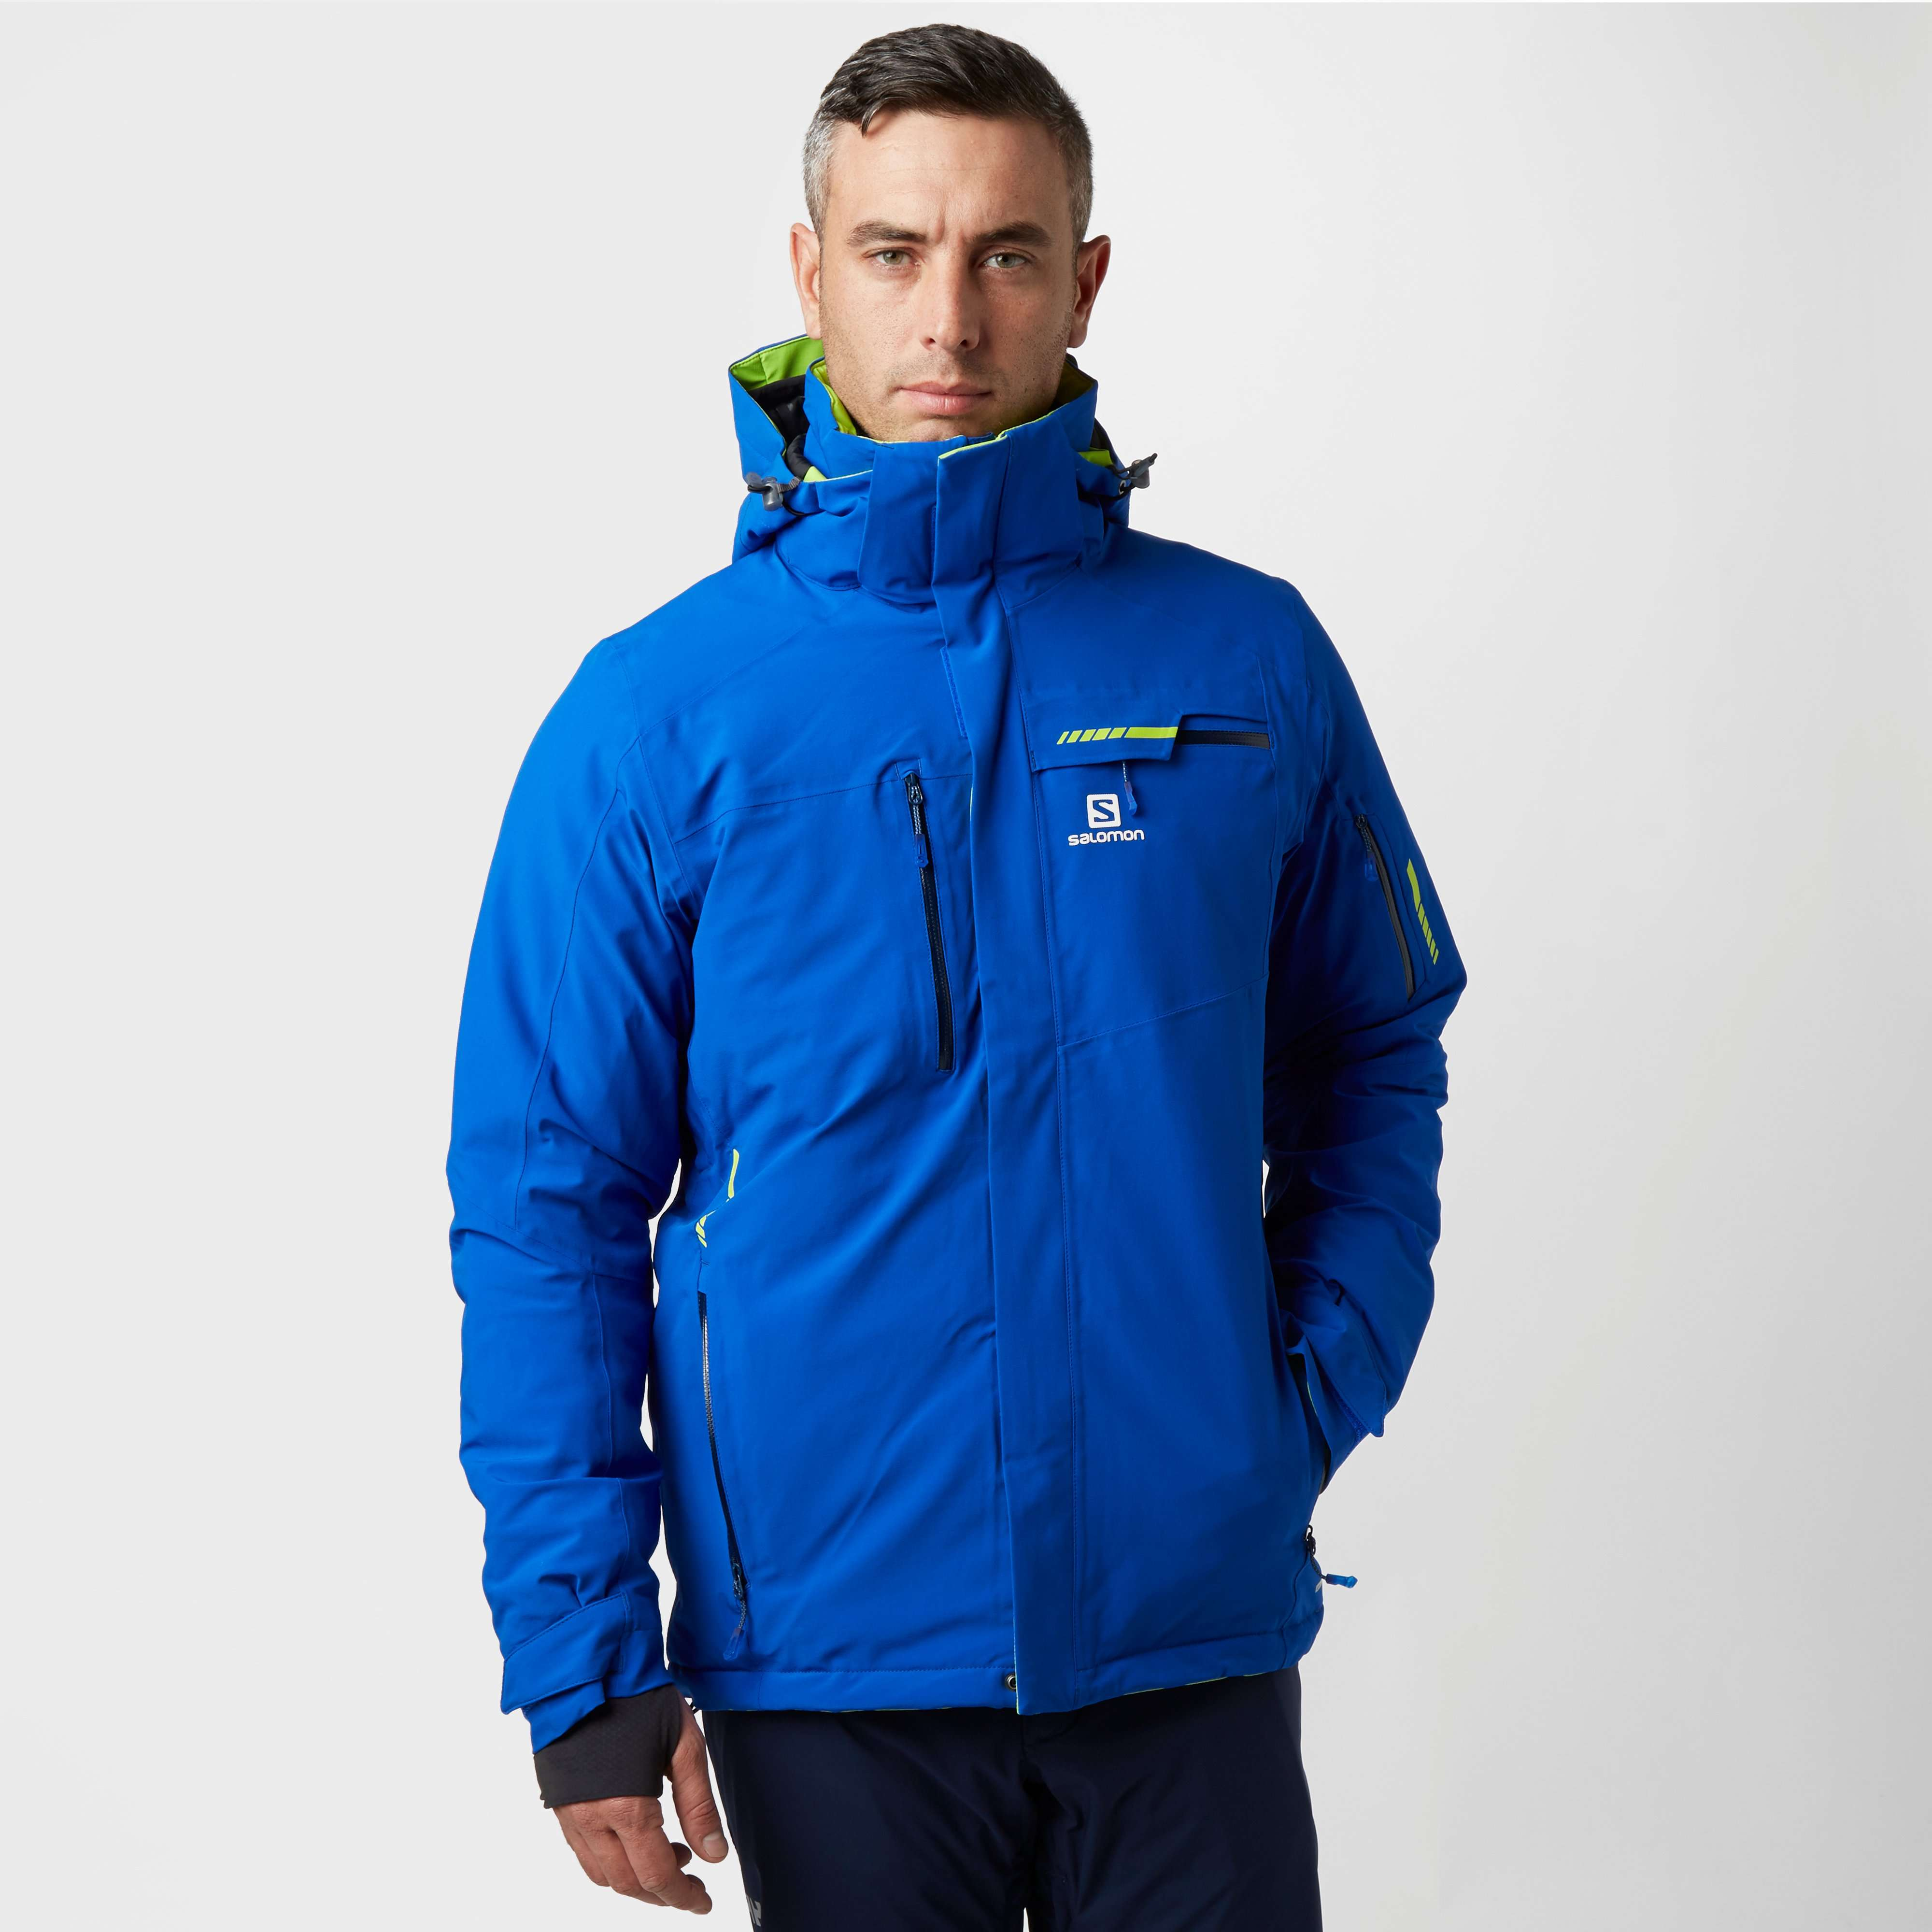 SALOMON Men's Brilliant Ski Jacket